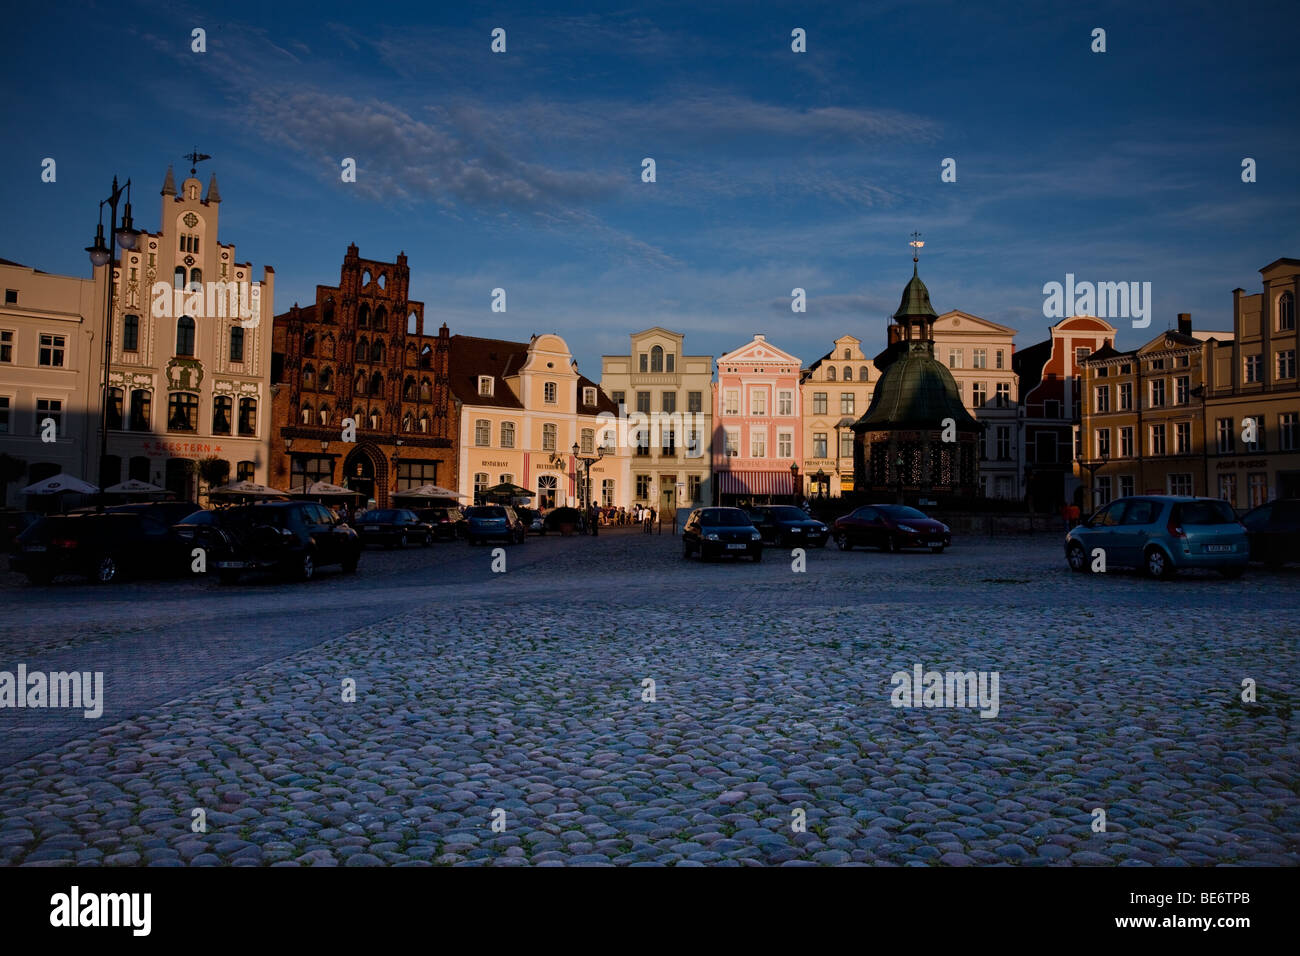 Historical Houses at the old market in the centre of Wismar, Germany, at sunset - Stock Image